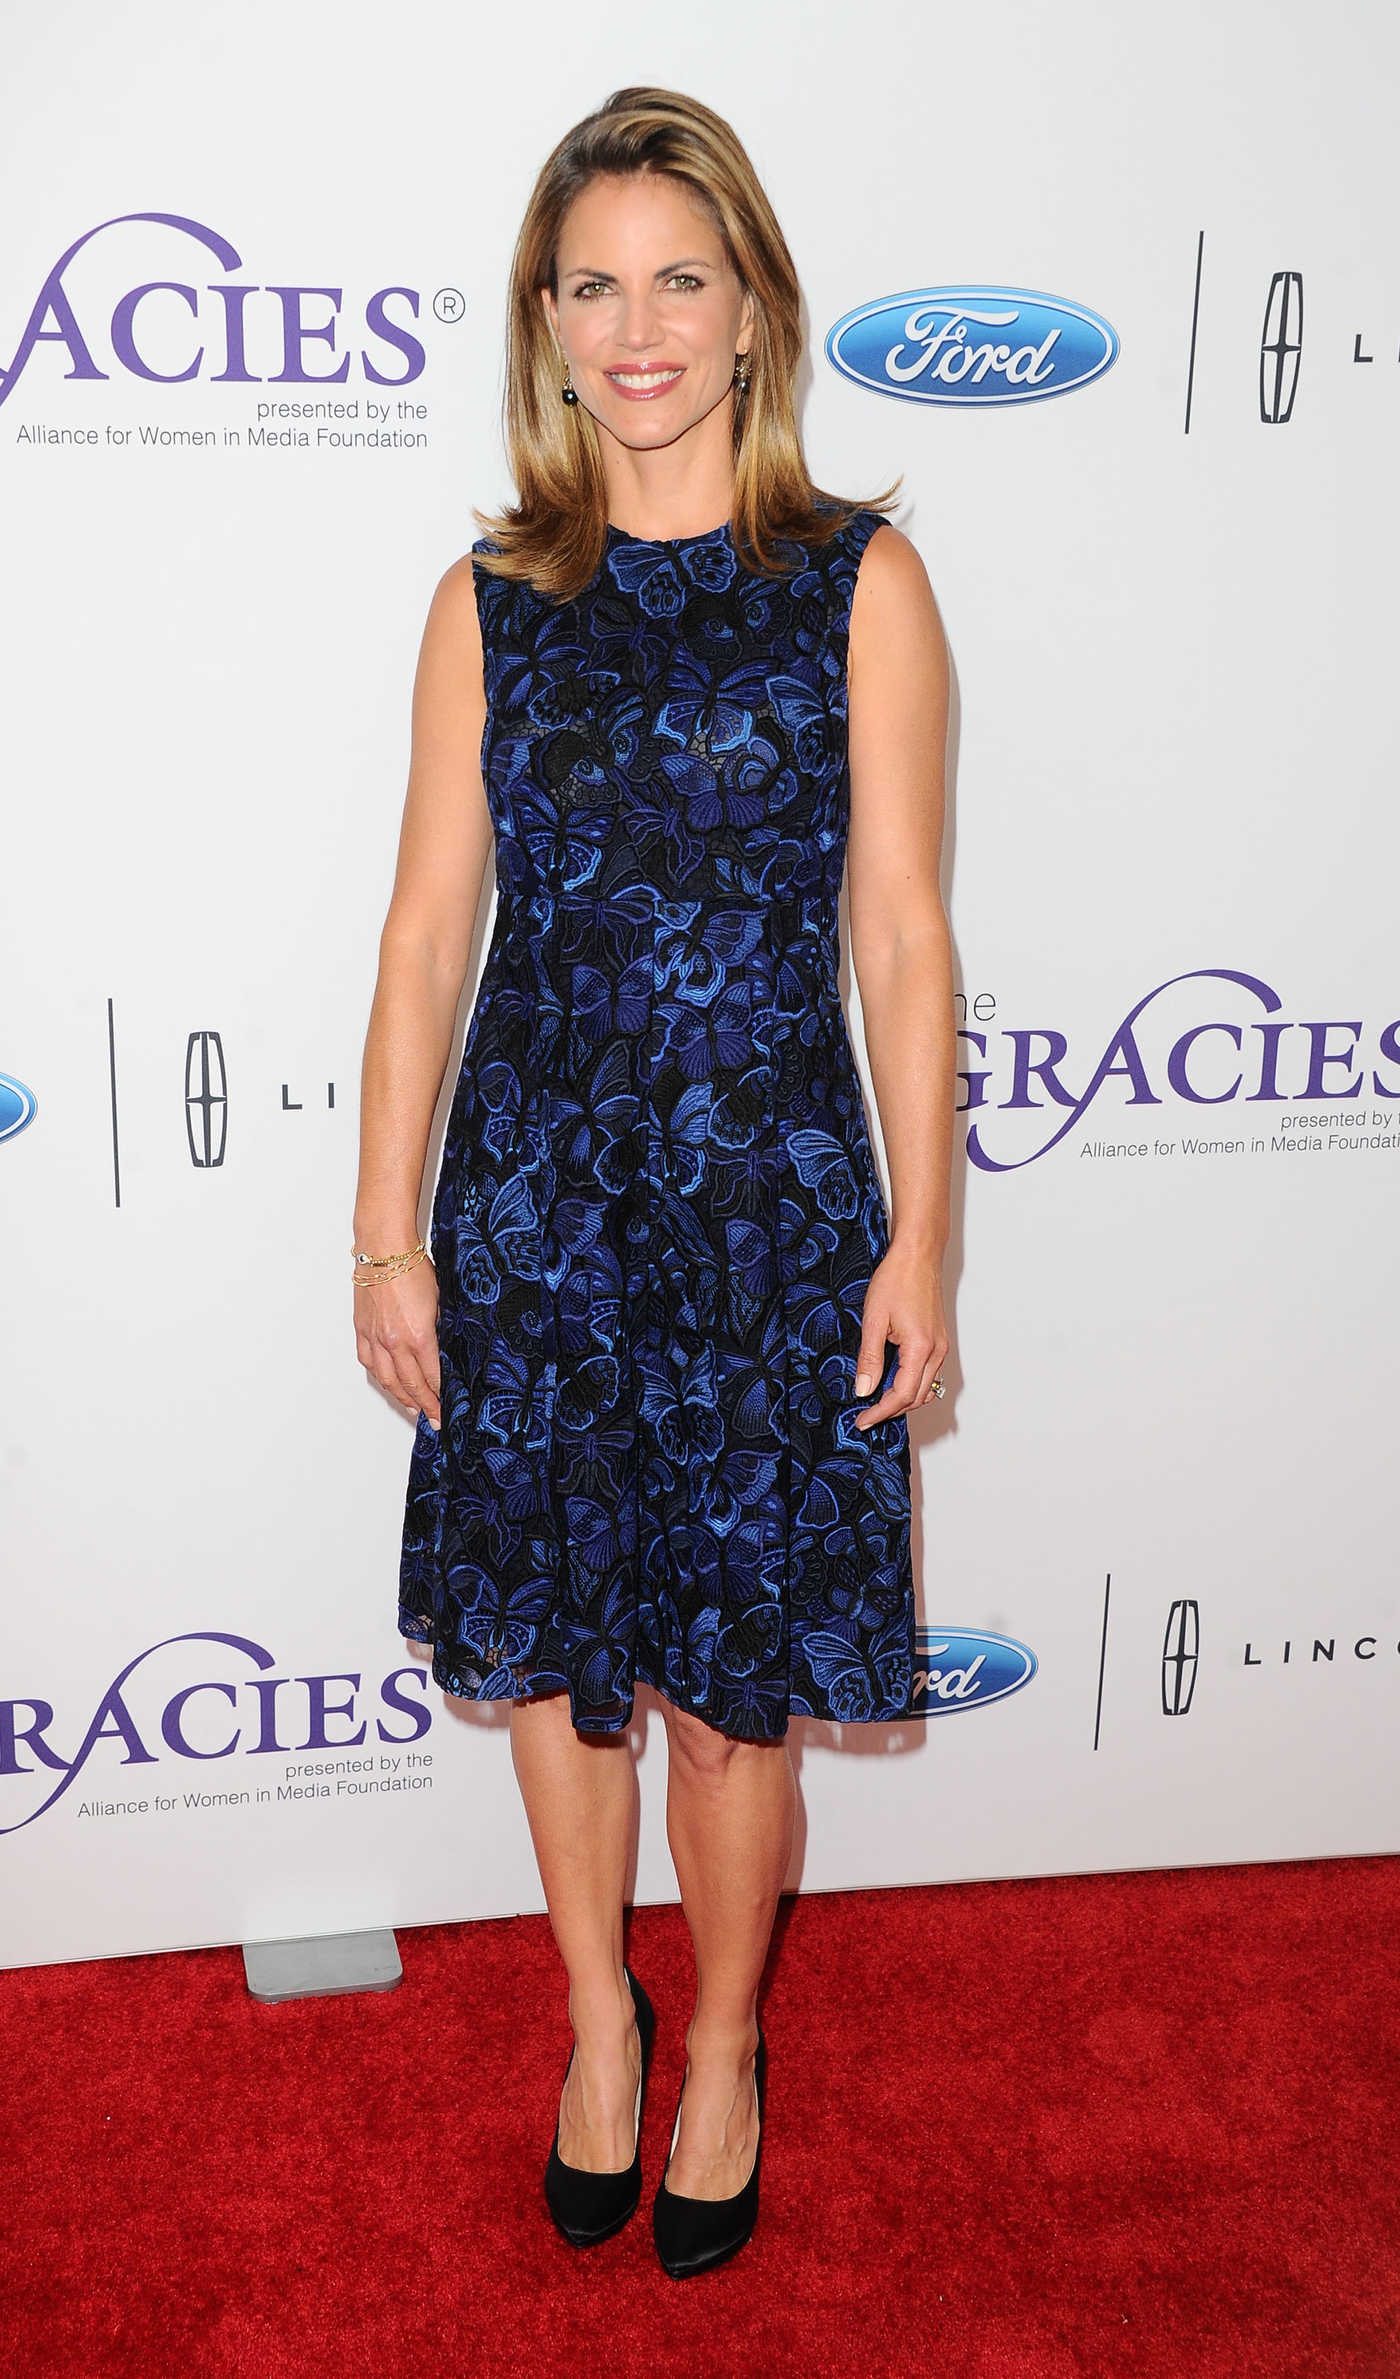 Natalie Morales at the 42nd Annual Gracie Awards at the Beverly Wilshire Hotel in Los Angeles 06/06/2017